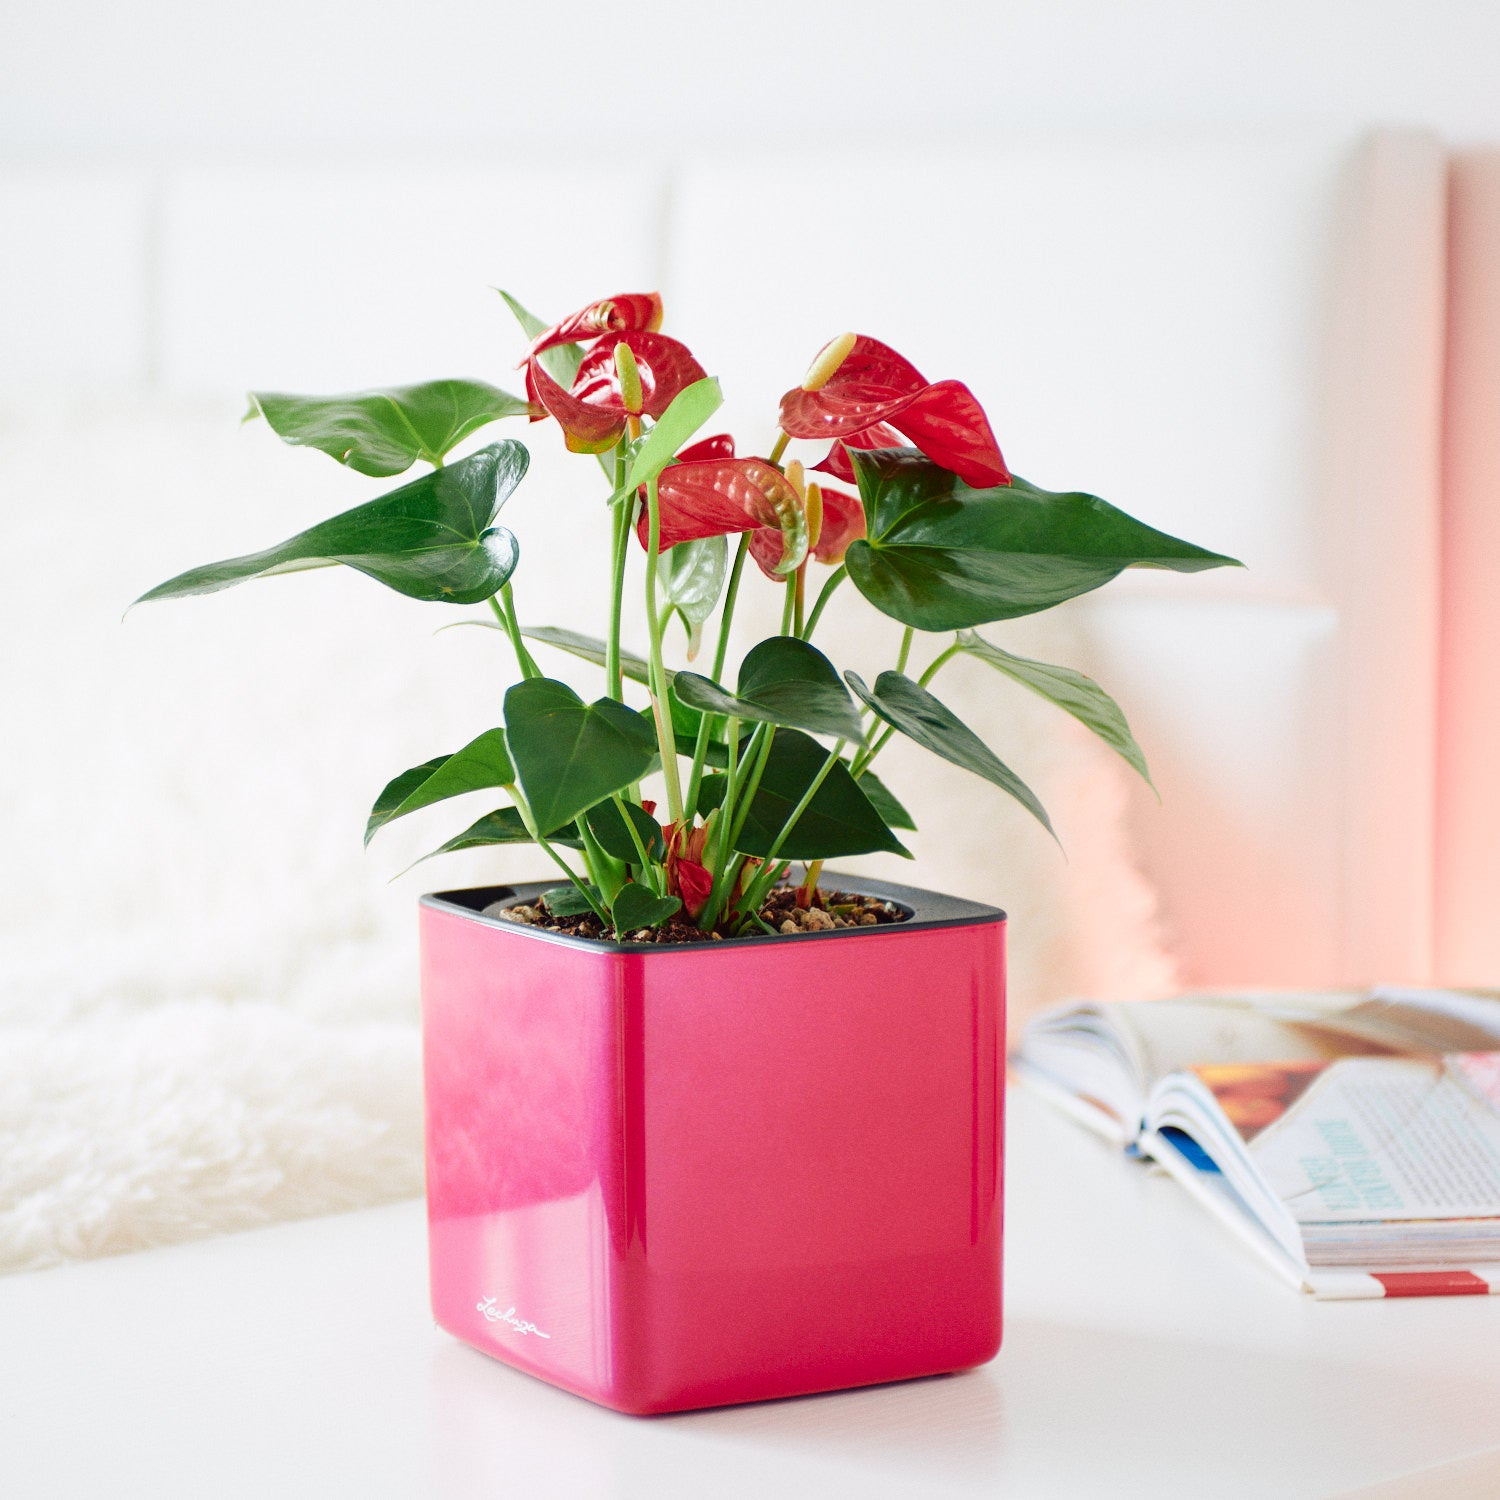 Anthurium Plant In Lechuza Cube 14 Cherry Pie Planter | My City Plants